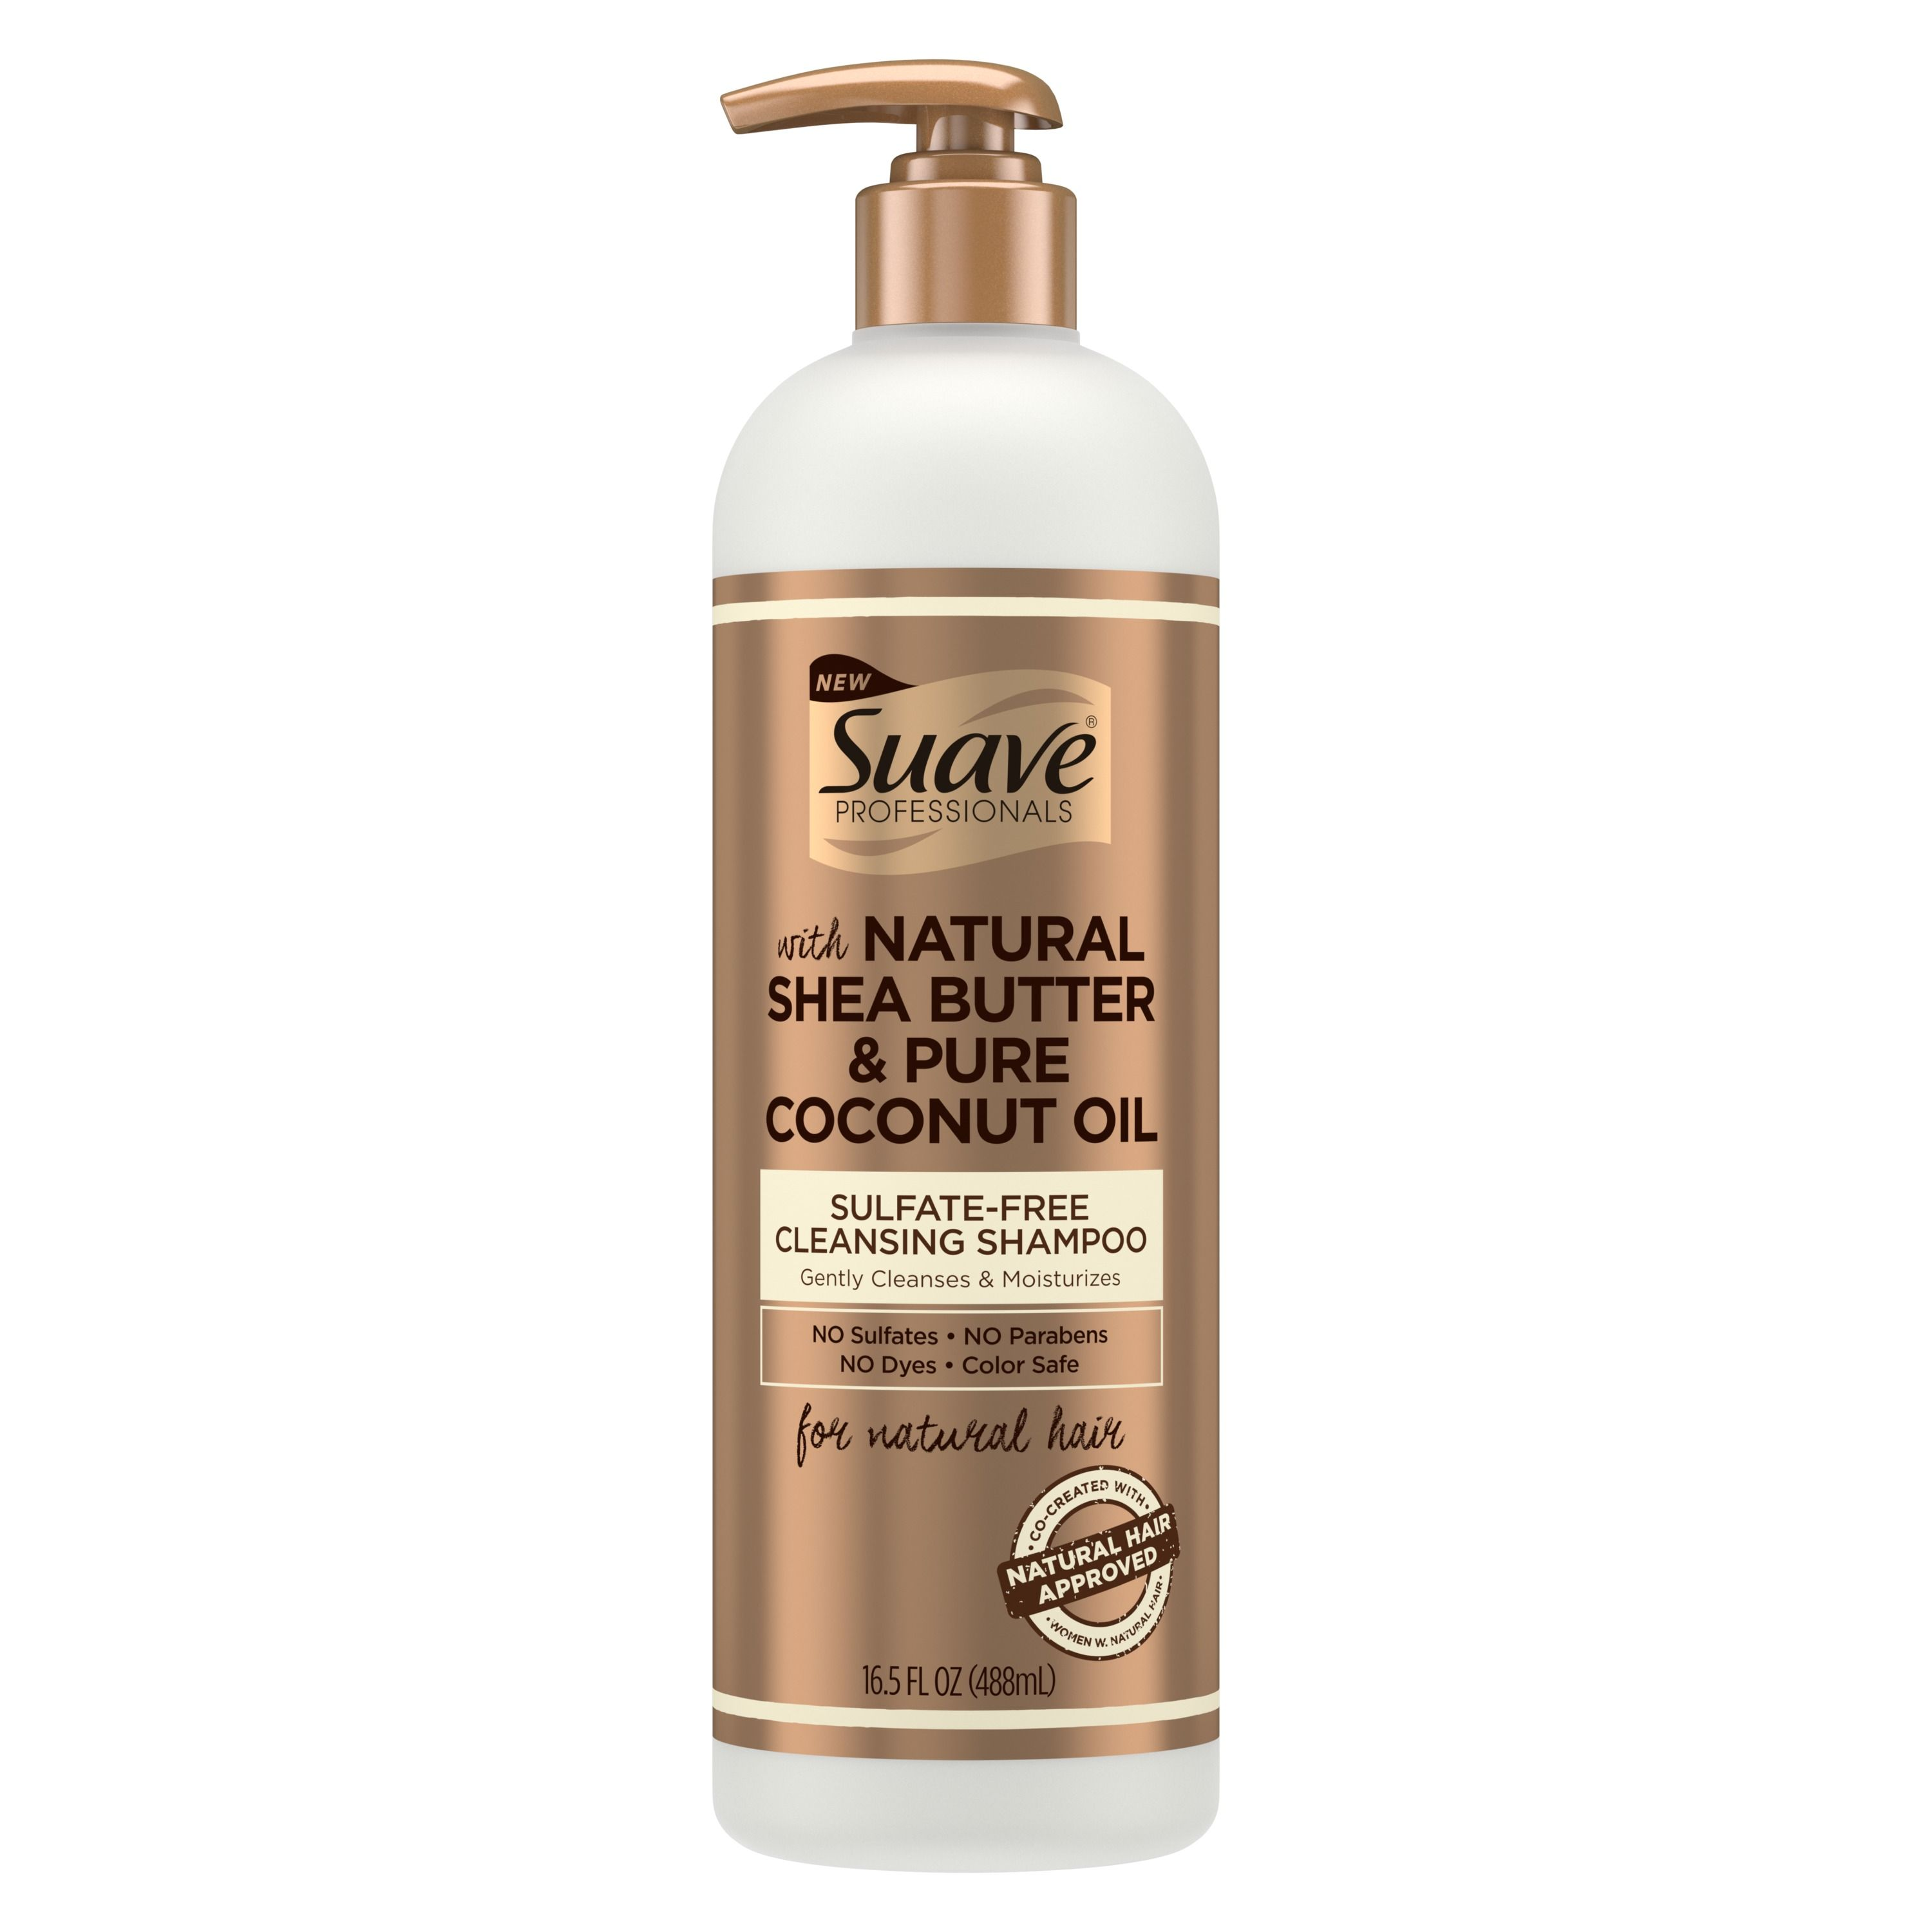 Natural Shea Butter & Pure Coconut Oil Sulfate Free Cleansing Shampoo